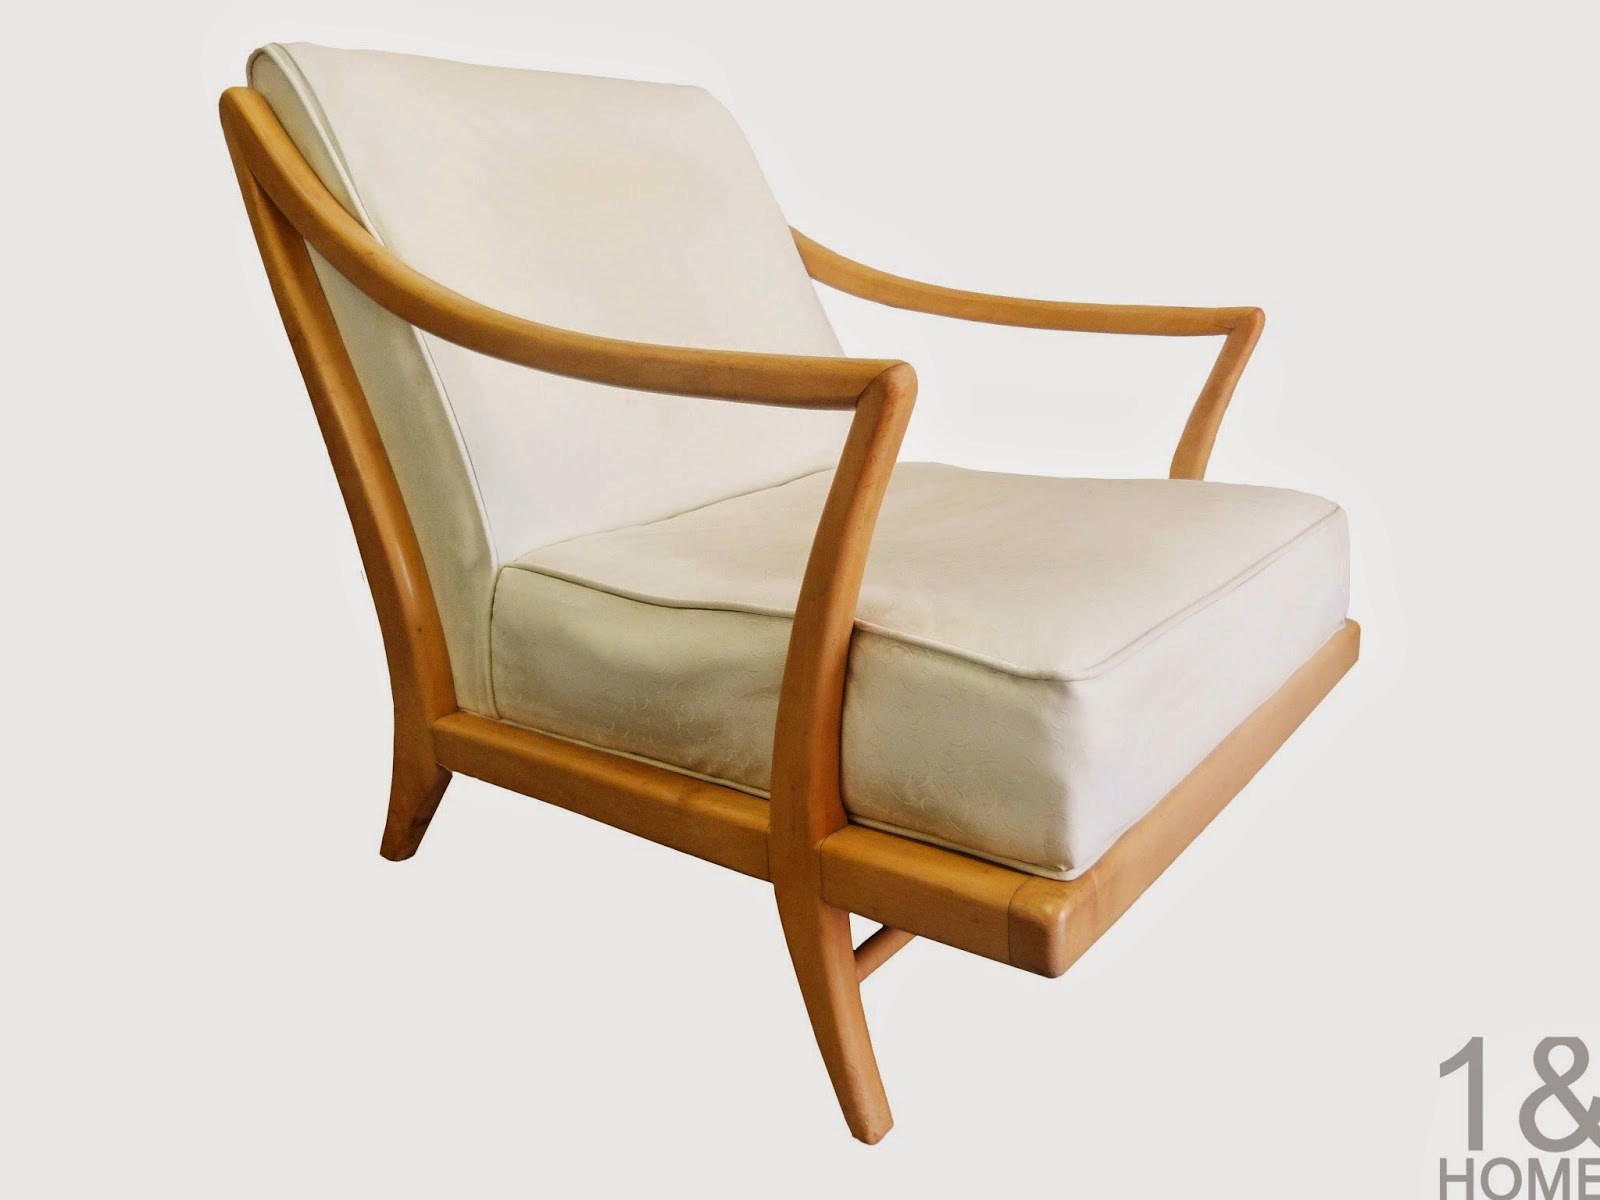 Delicieux Mid Century Modern, Sculptural, Gio Ponti Influenced, Lounge Chair In Birch